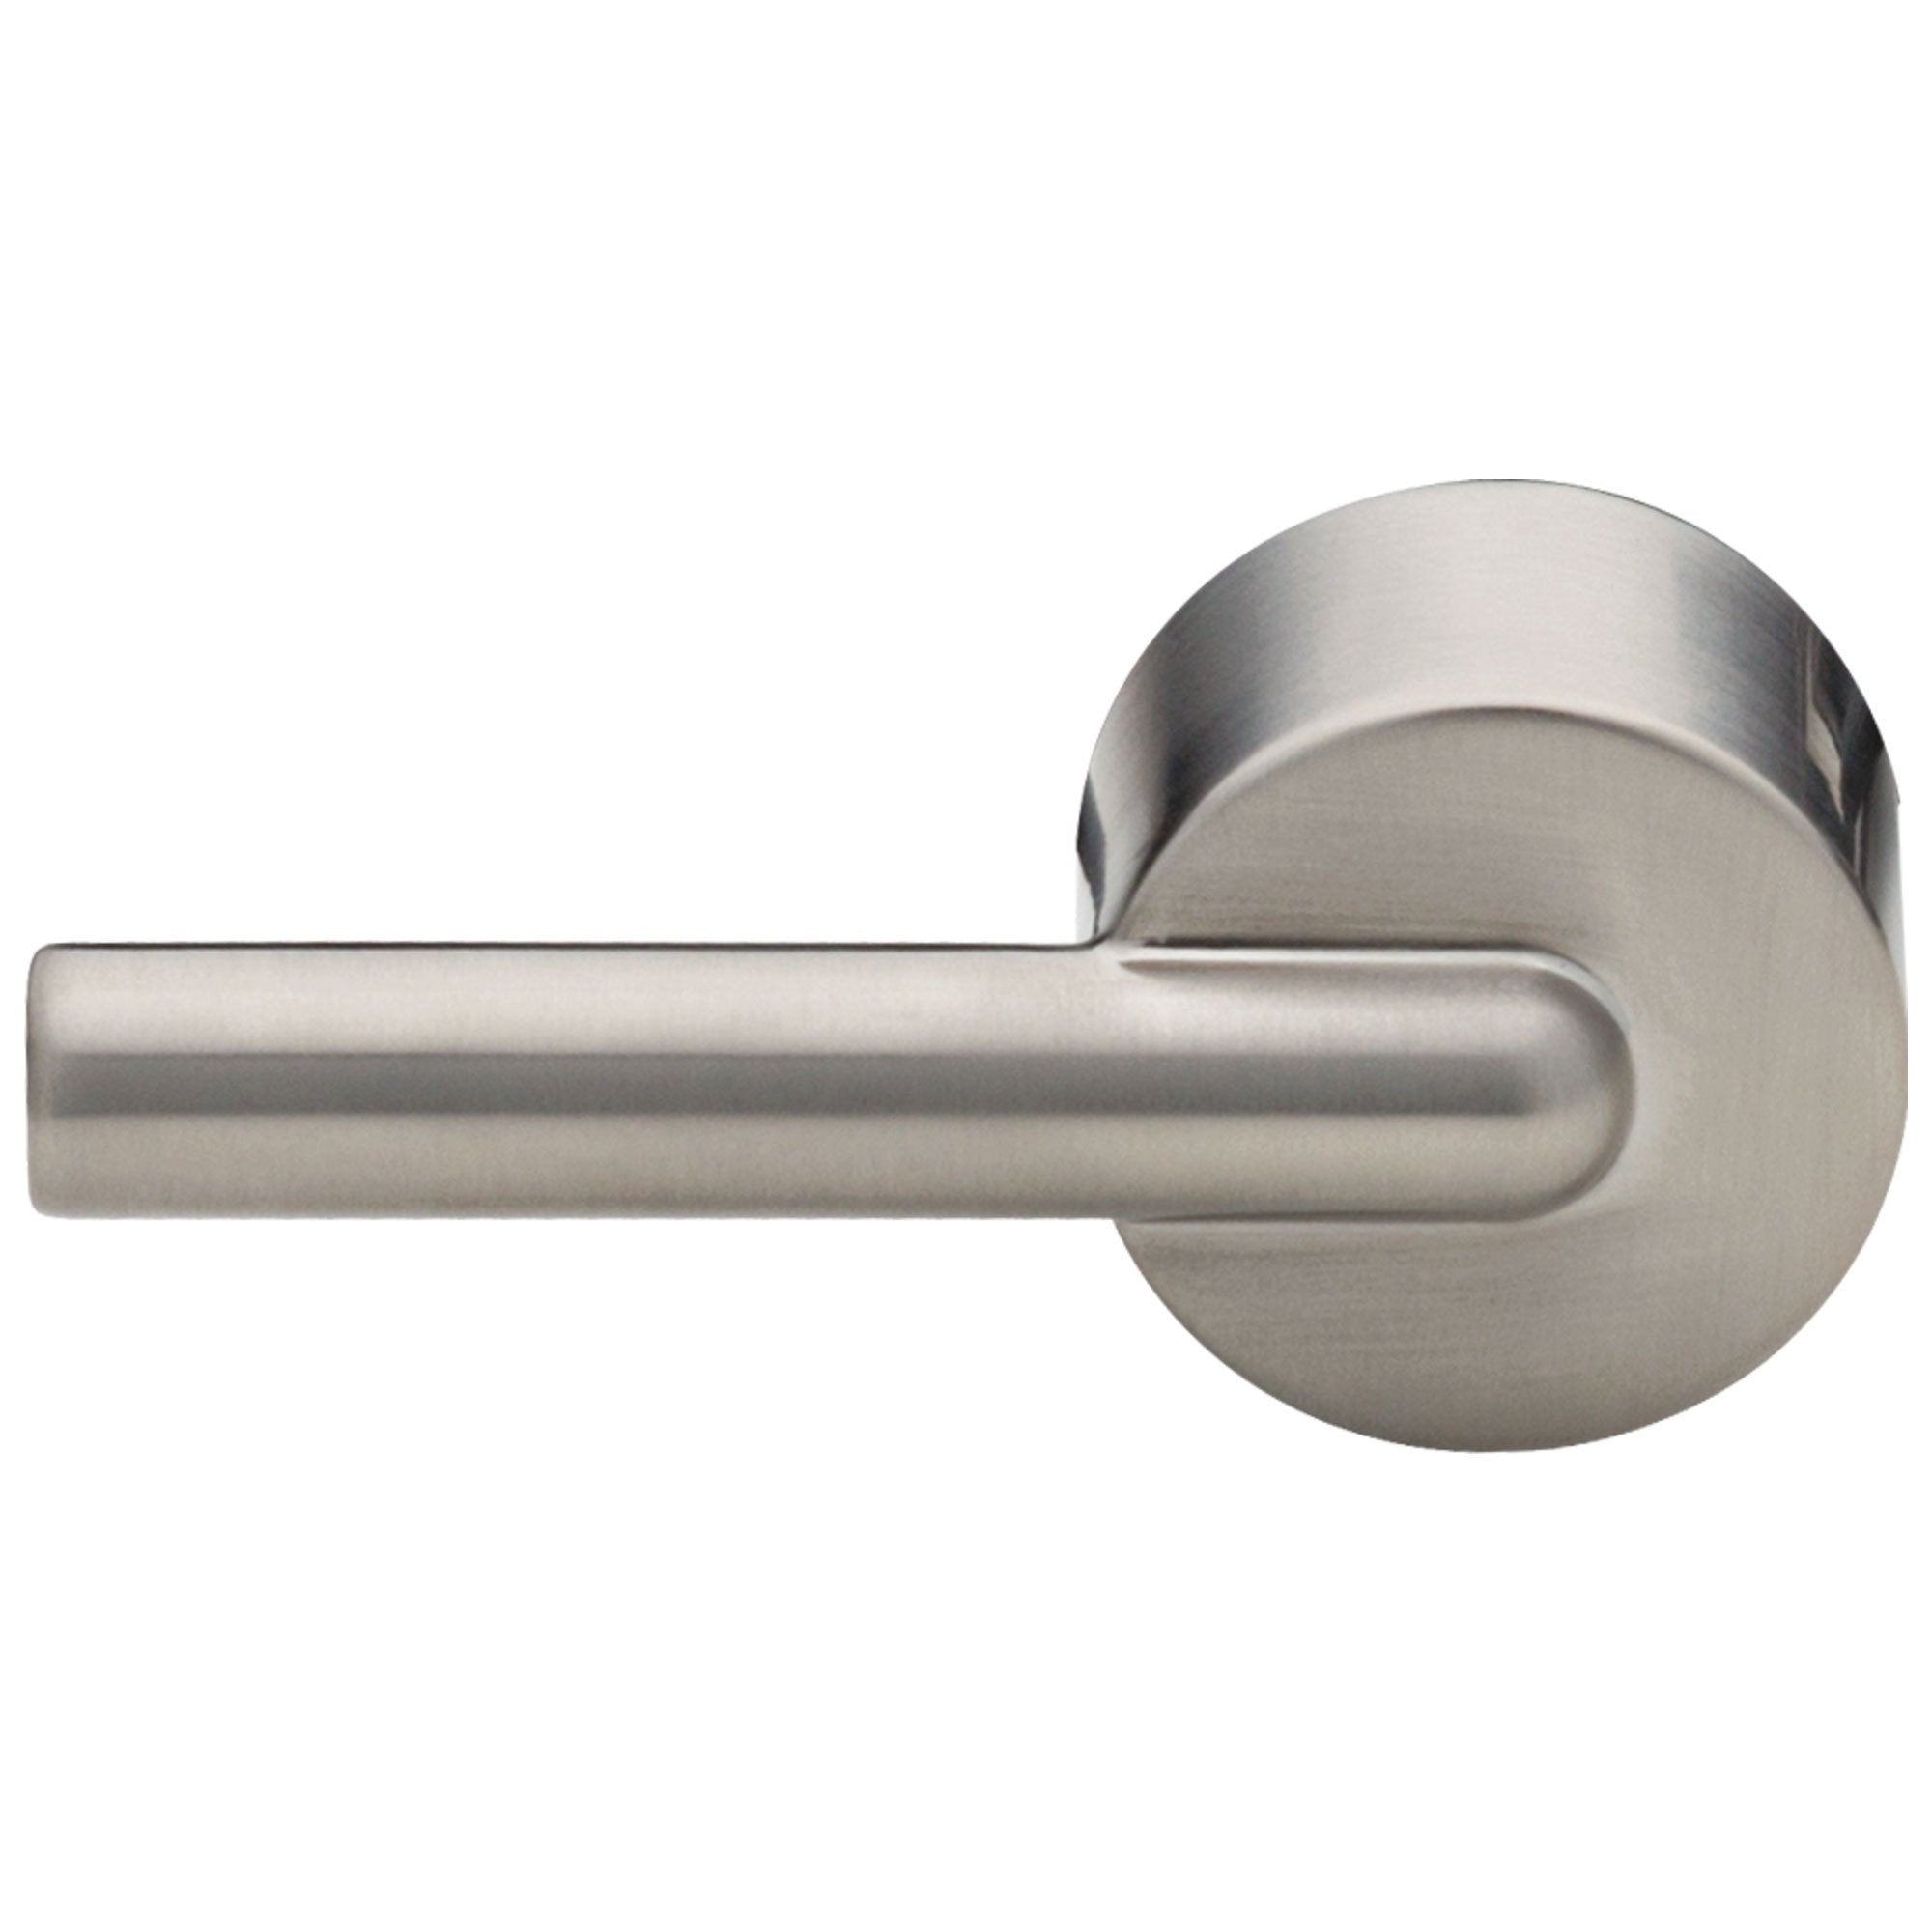 Delta Trinsic Collection Stainless Steel Finish Modern Universal Mount Toilet Tank Flush Handle Lever D75960SS